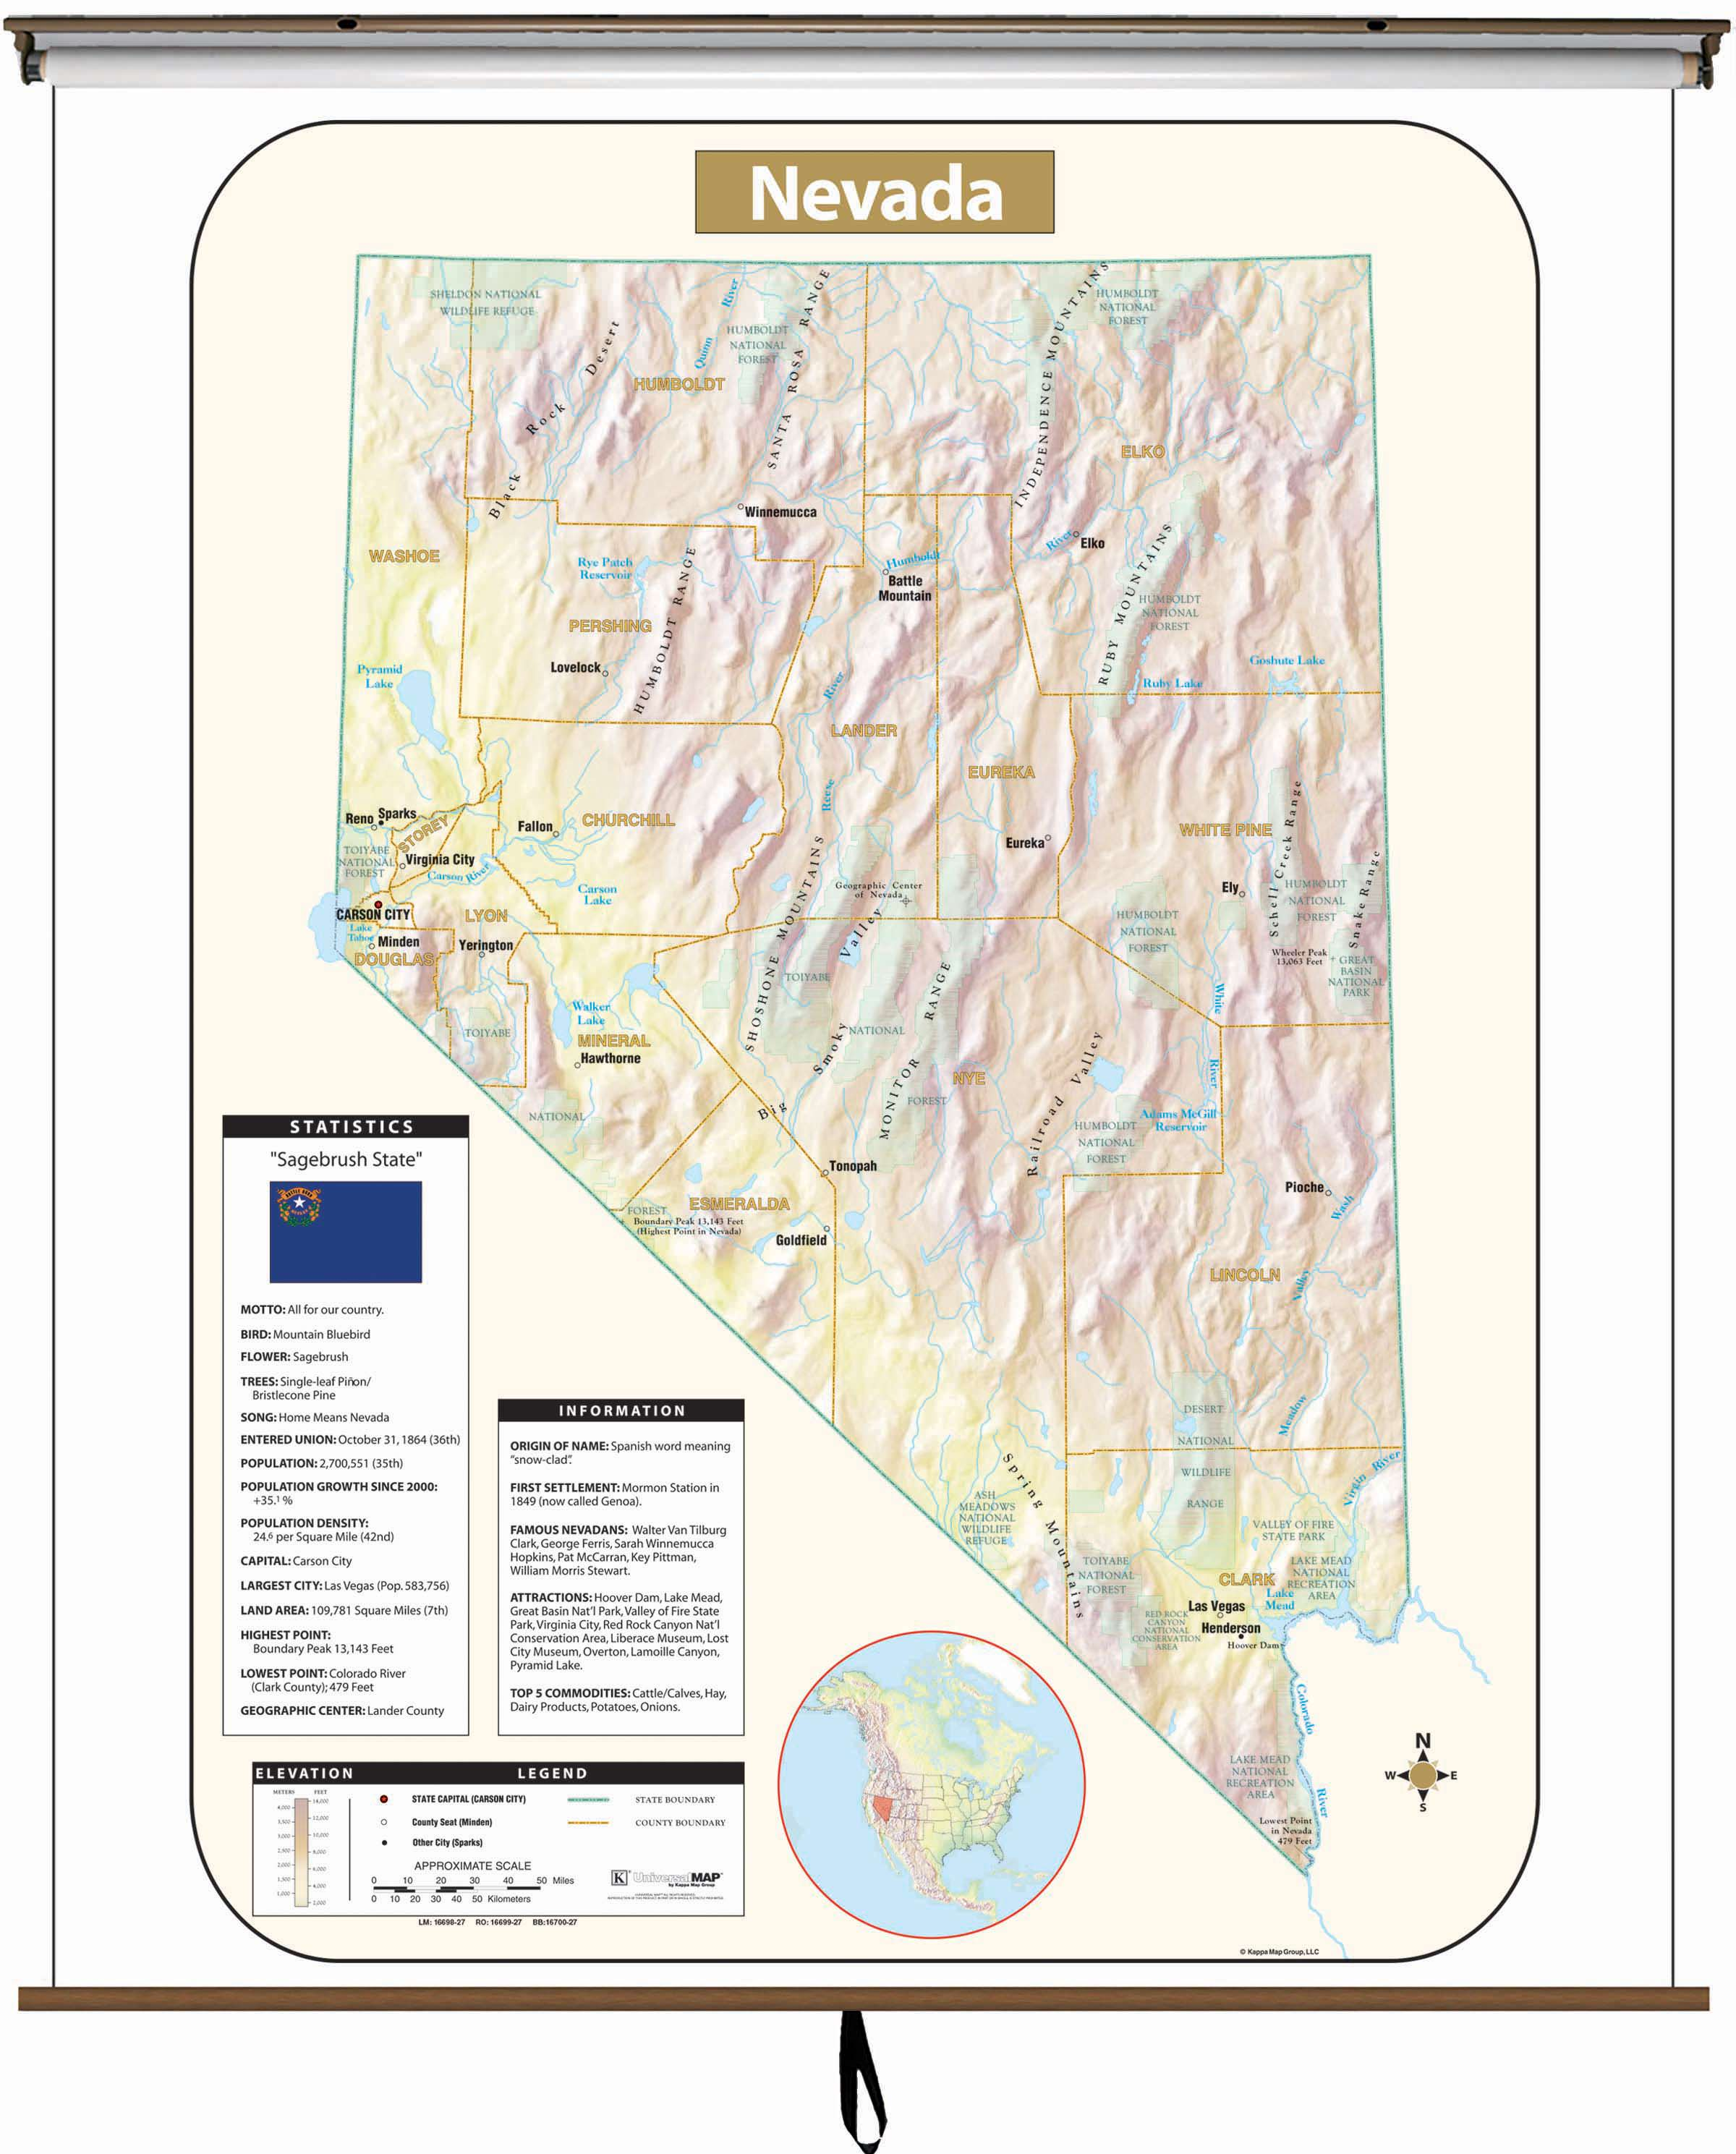 Nevada Large Scale Shaded Relief Wall Map on Roller with Backboard ...